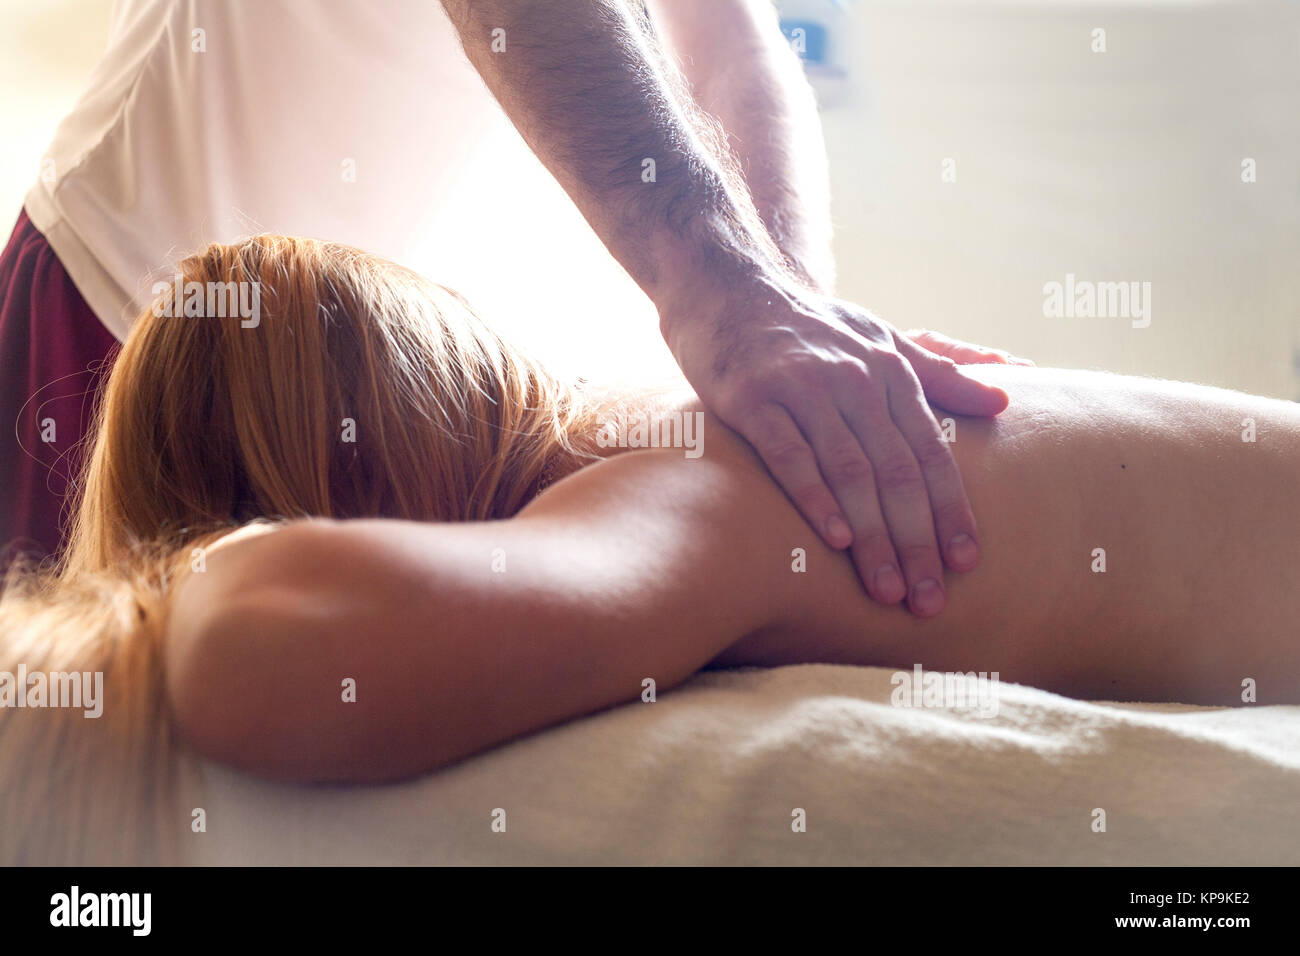 therapeutic massage manual therapy for curing pain in the joints of the osteochondrosis of the spine of muscle relaxation - Stock Image